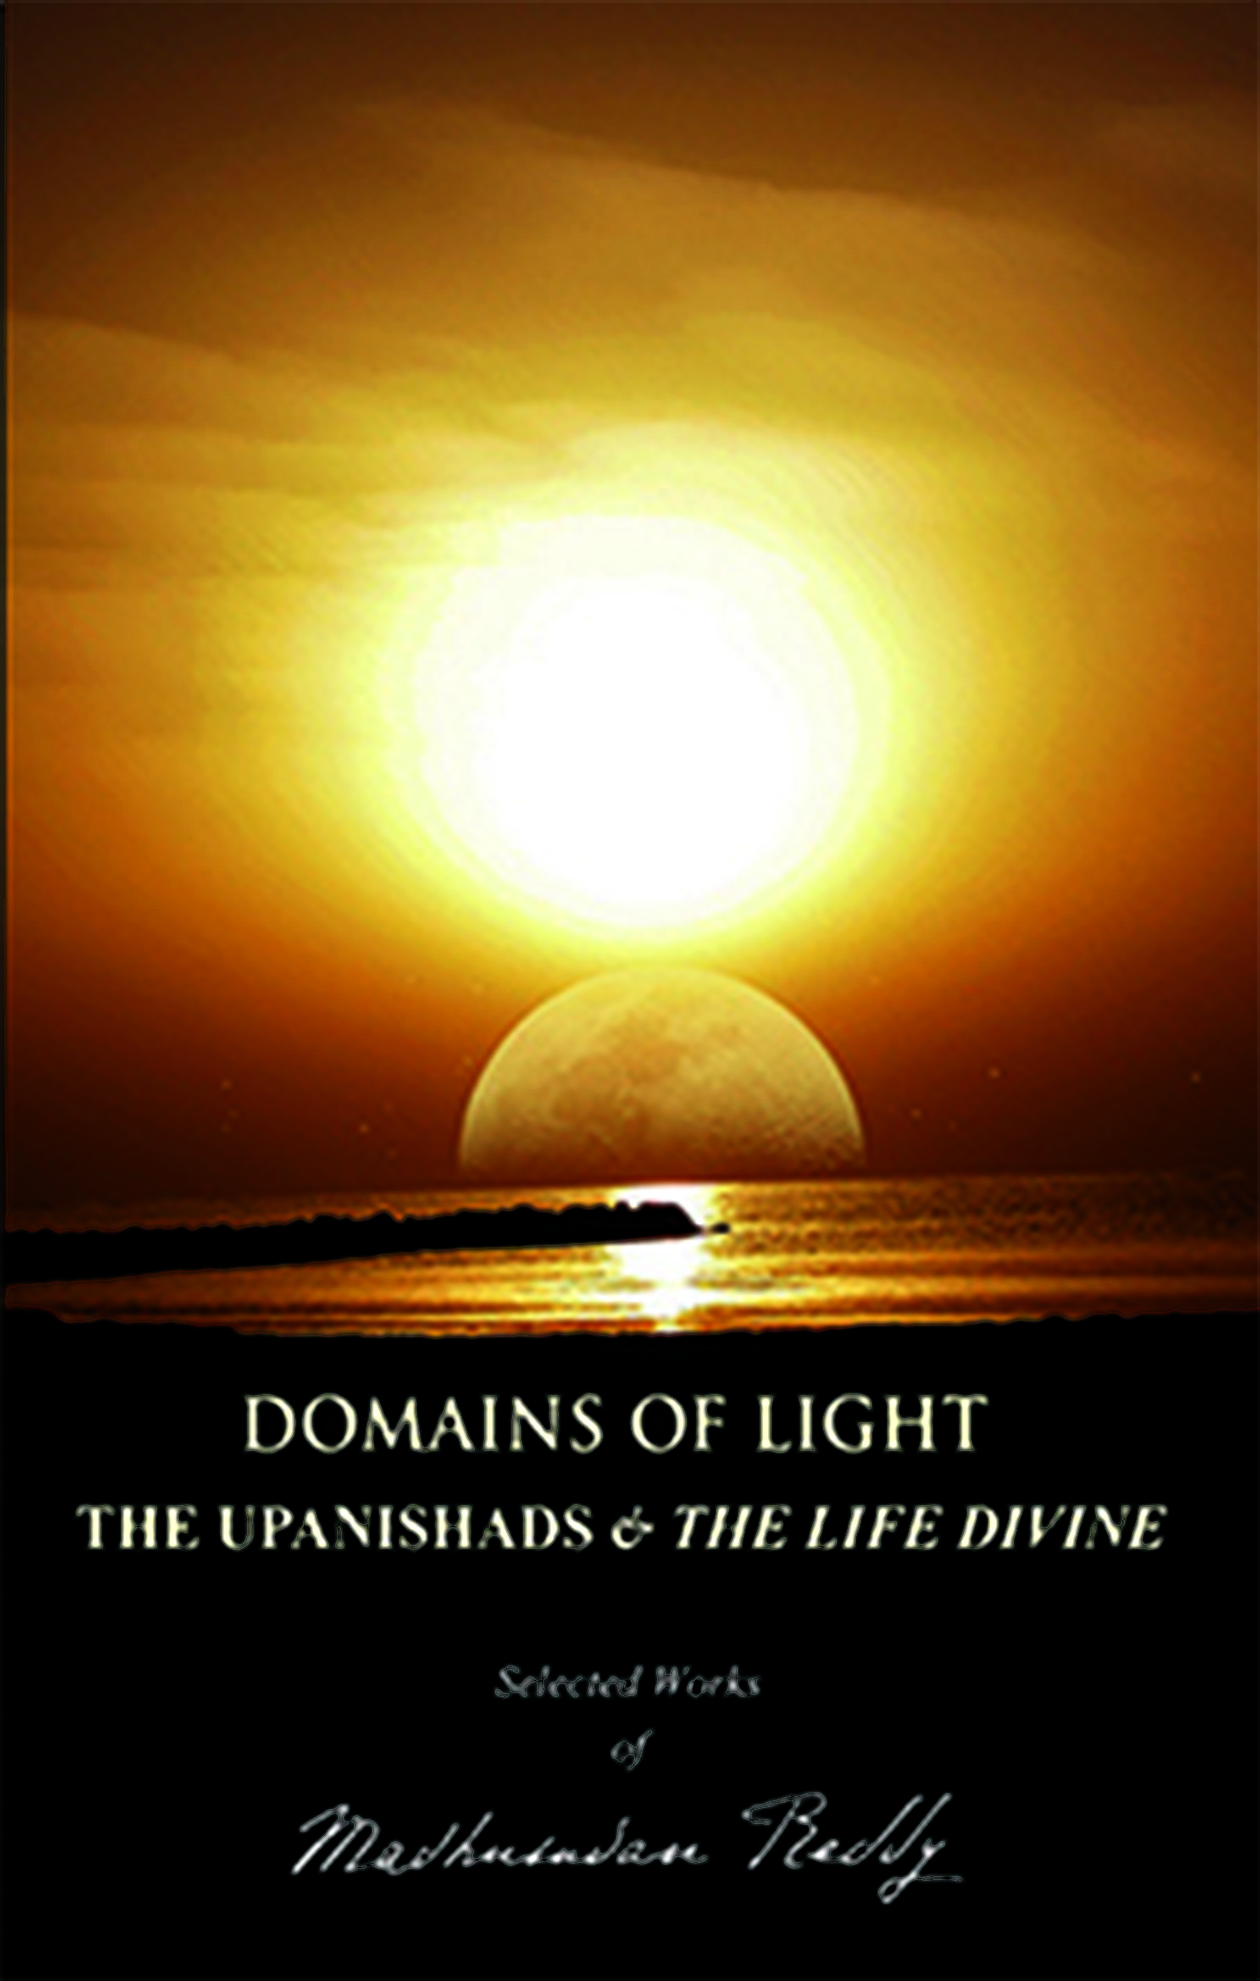 Domains of Light-The Upanishads & The Life Divine